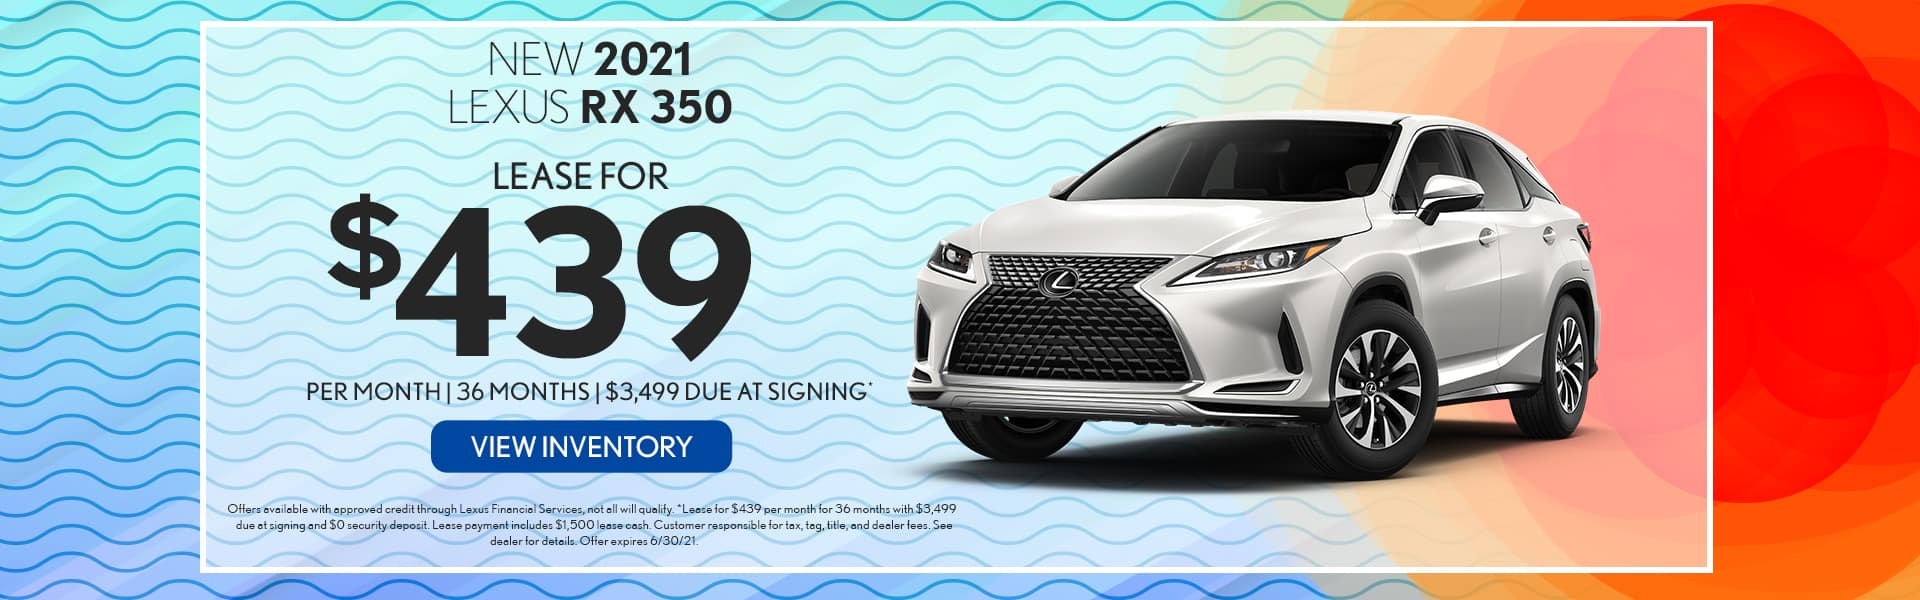 2021 Lexus RX 350 for lease in Mobile, AL